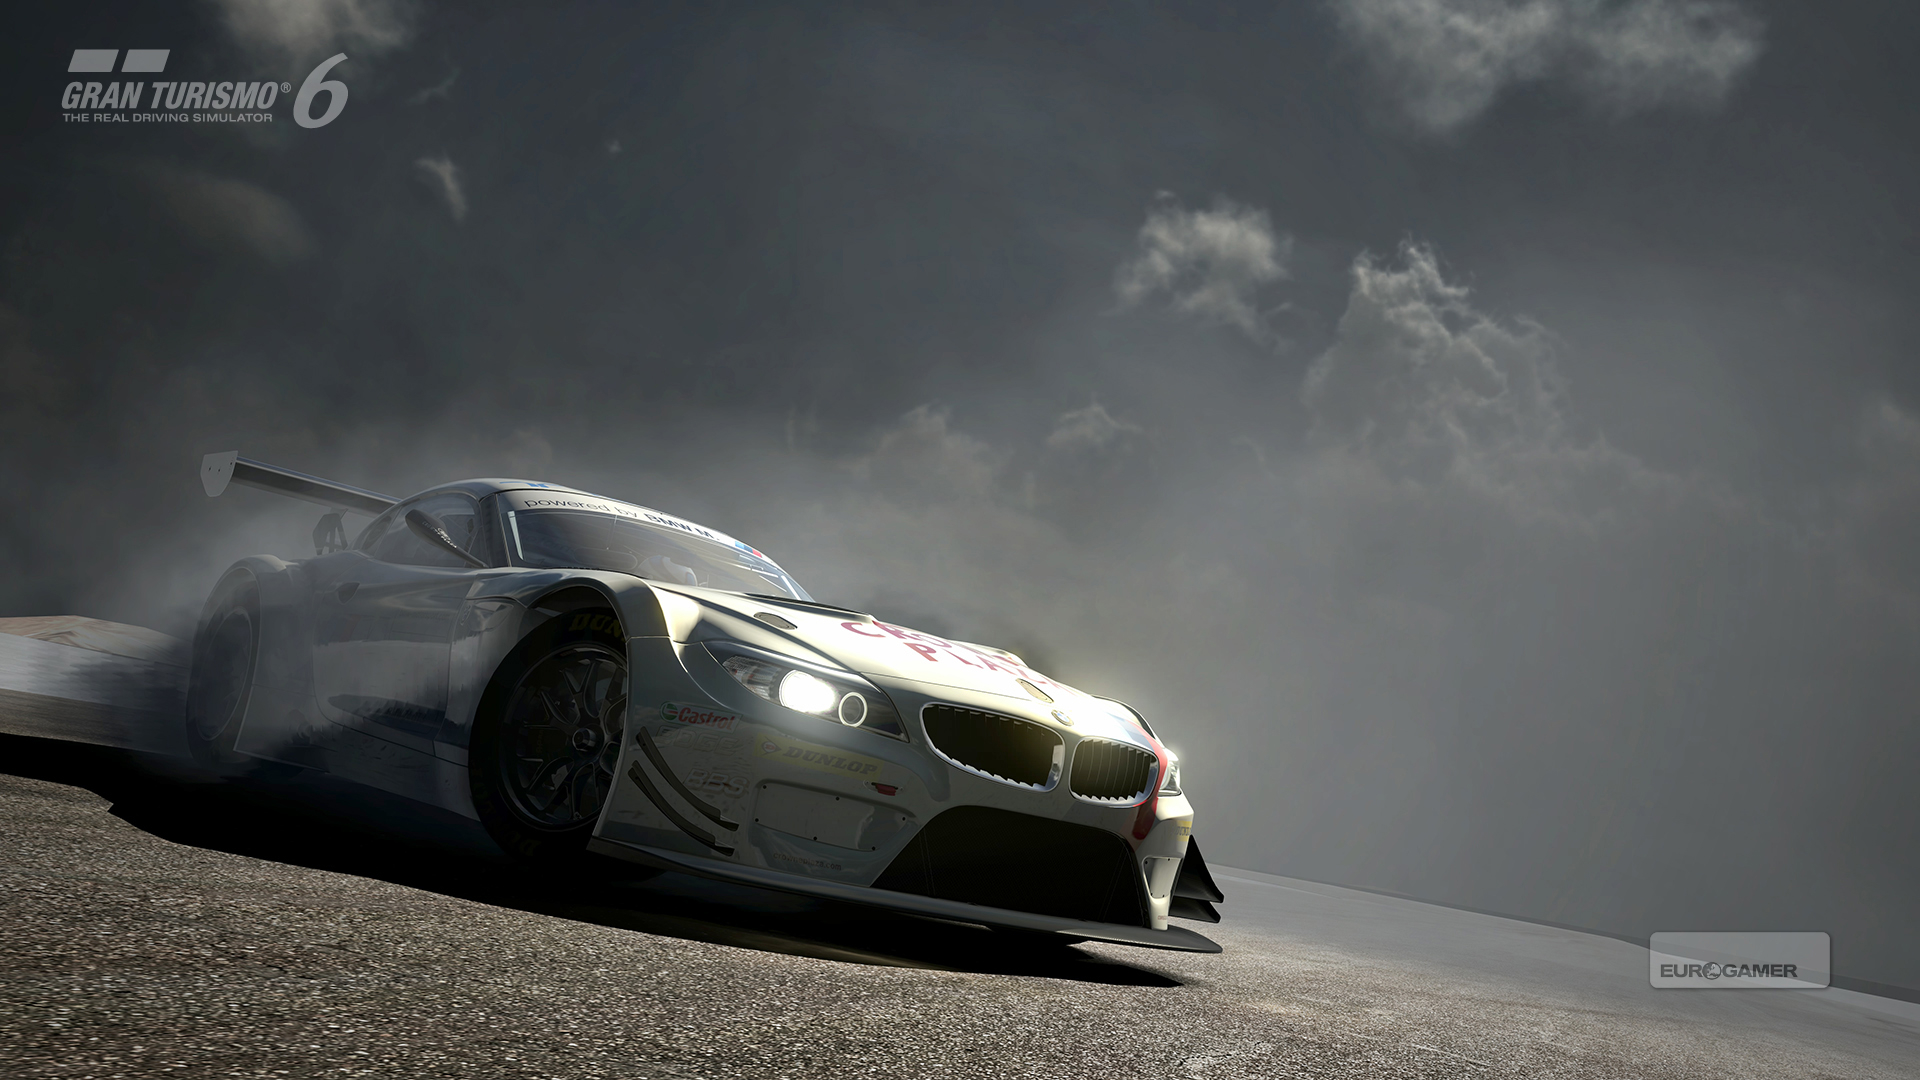 Gran Turismo Background